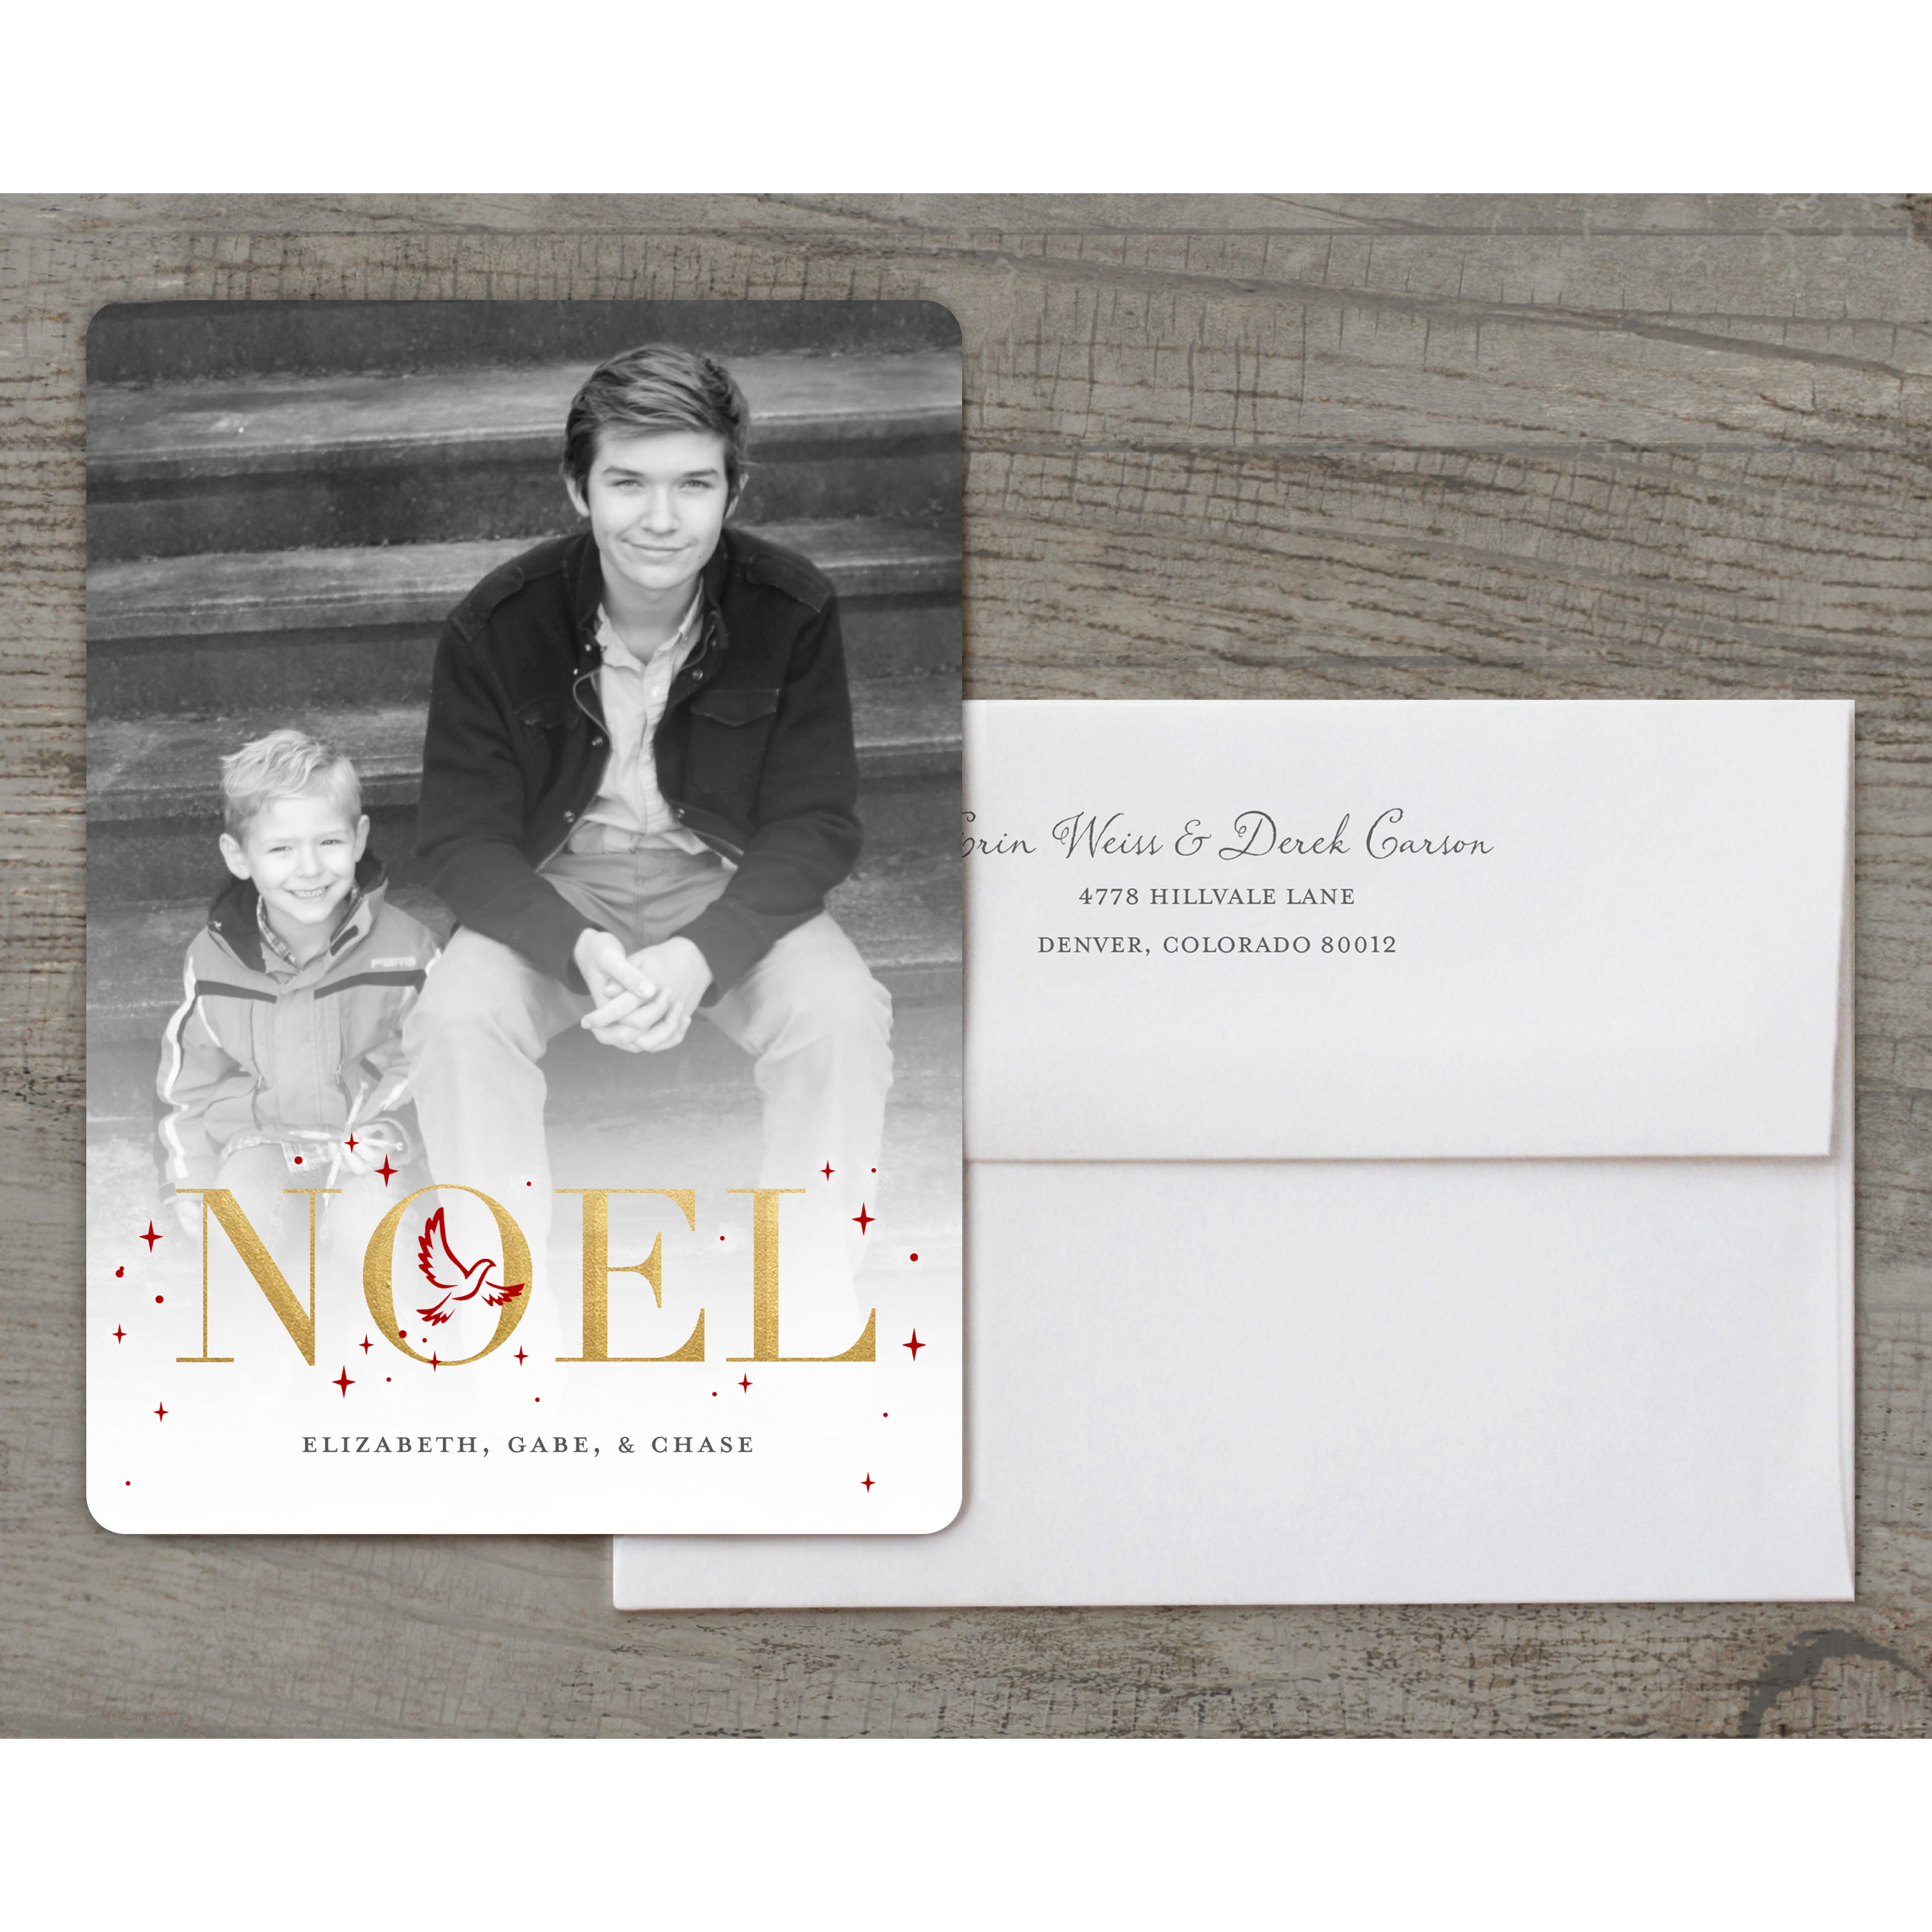 Noel - Deluxe 5x7 Personalized Holiday Religious Holiday Card